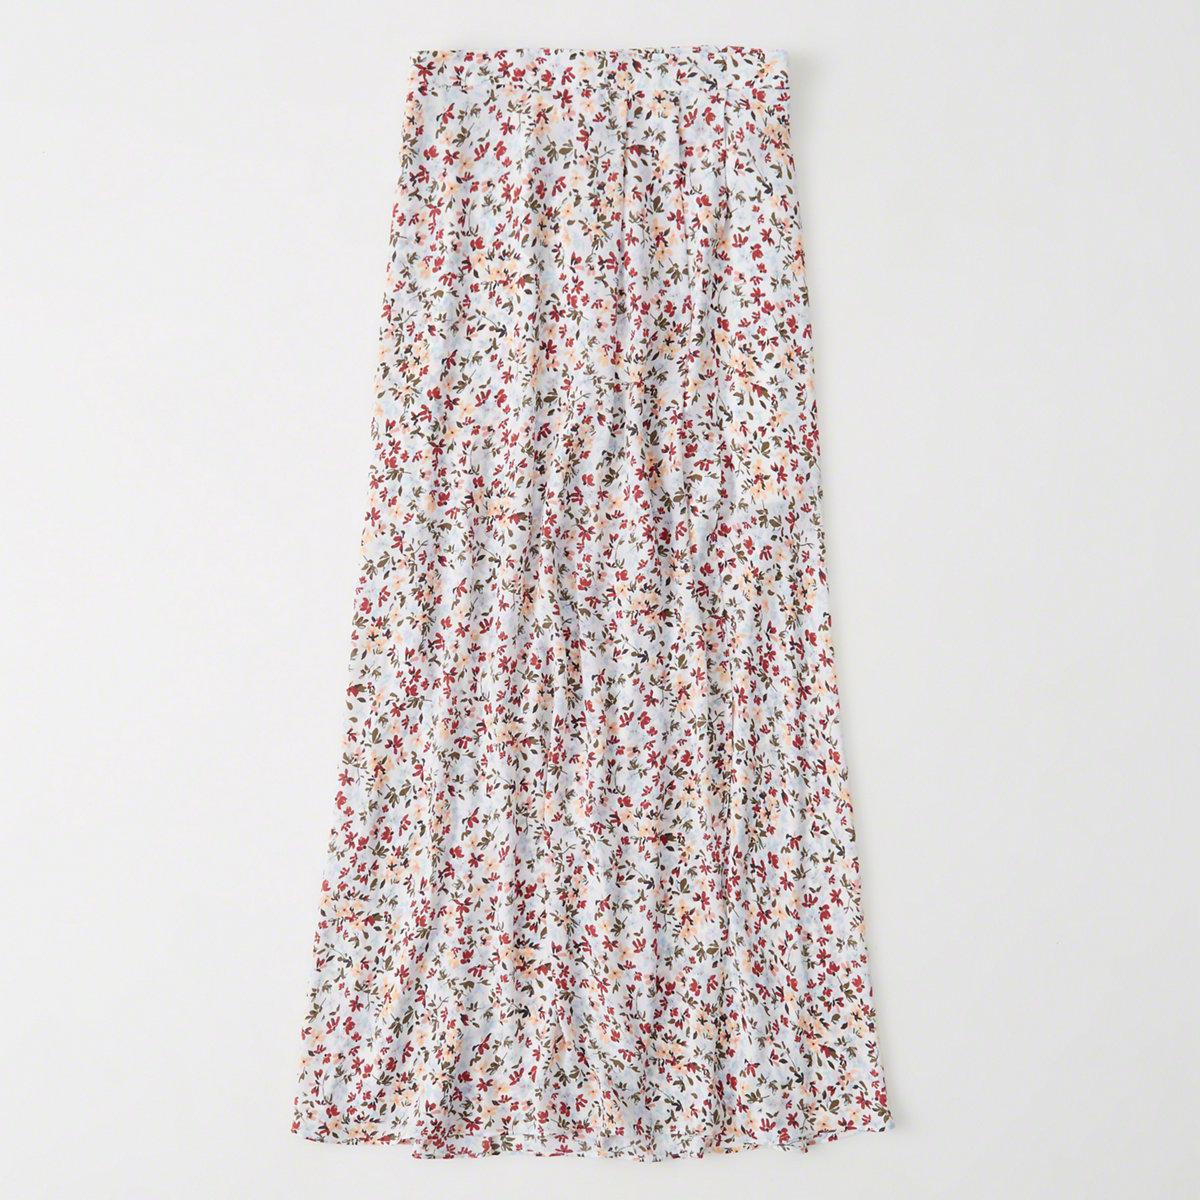 Skirt Floral abercrombie